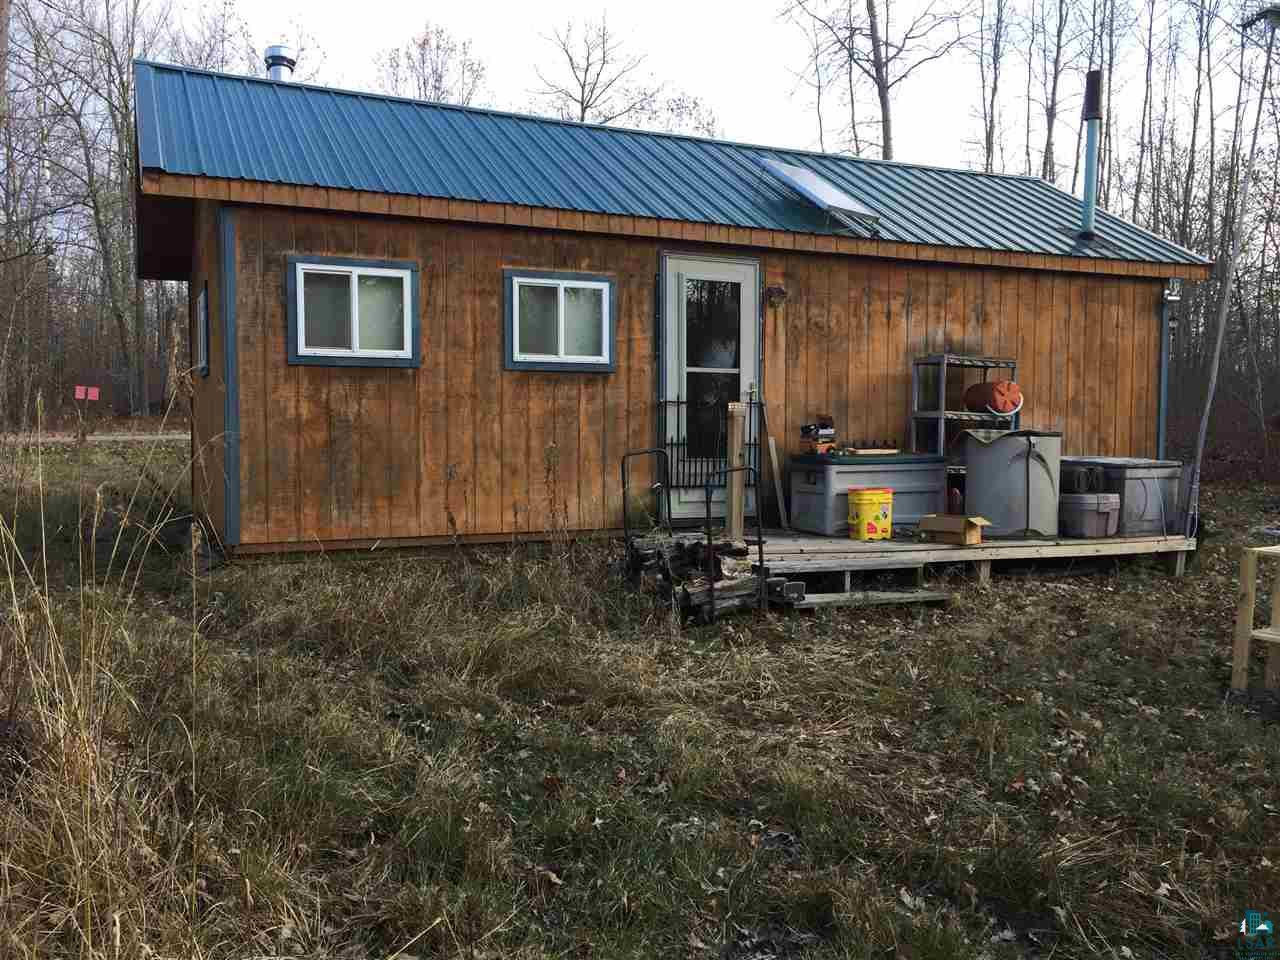 Off Grid Living - Ready for this years deer camp?  Grab this one fast!  14 x 28 Amish built building.  Solar Power, Wood Stove, On demand Hot Water, Generator ready, Stands up and ready to go.  Trails groomed and deer fattened up for you.  St Croix River Landing 2.5 miles one way and 1.5 miles the other.  Excellent fishing. Take a look today!